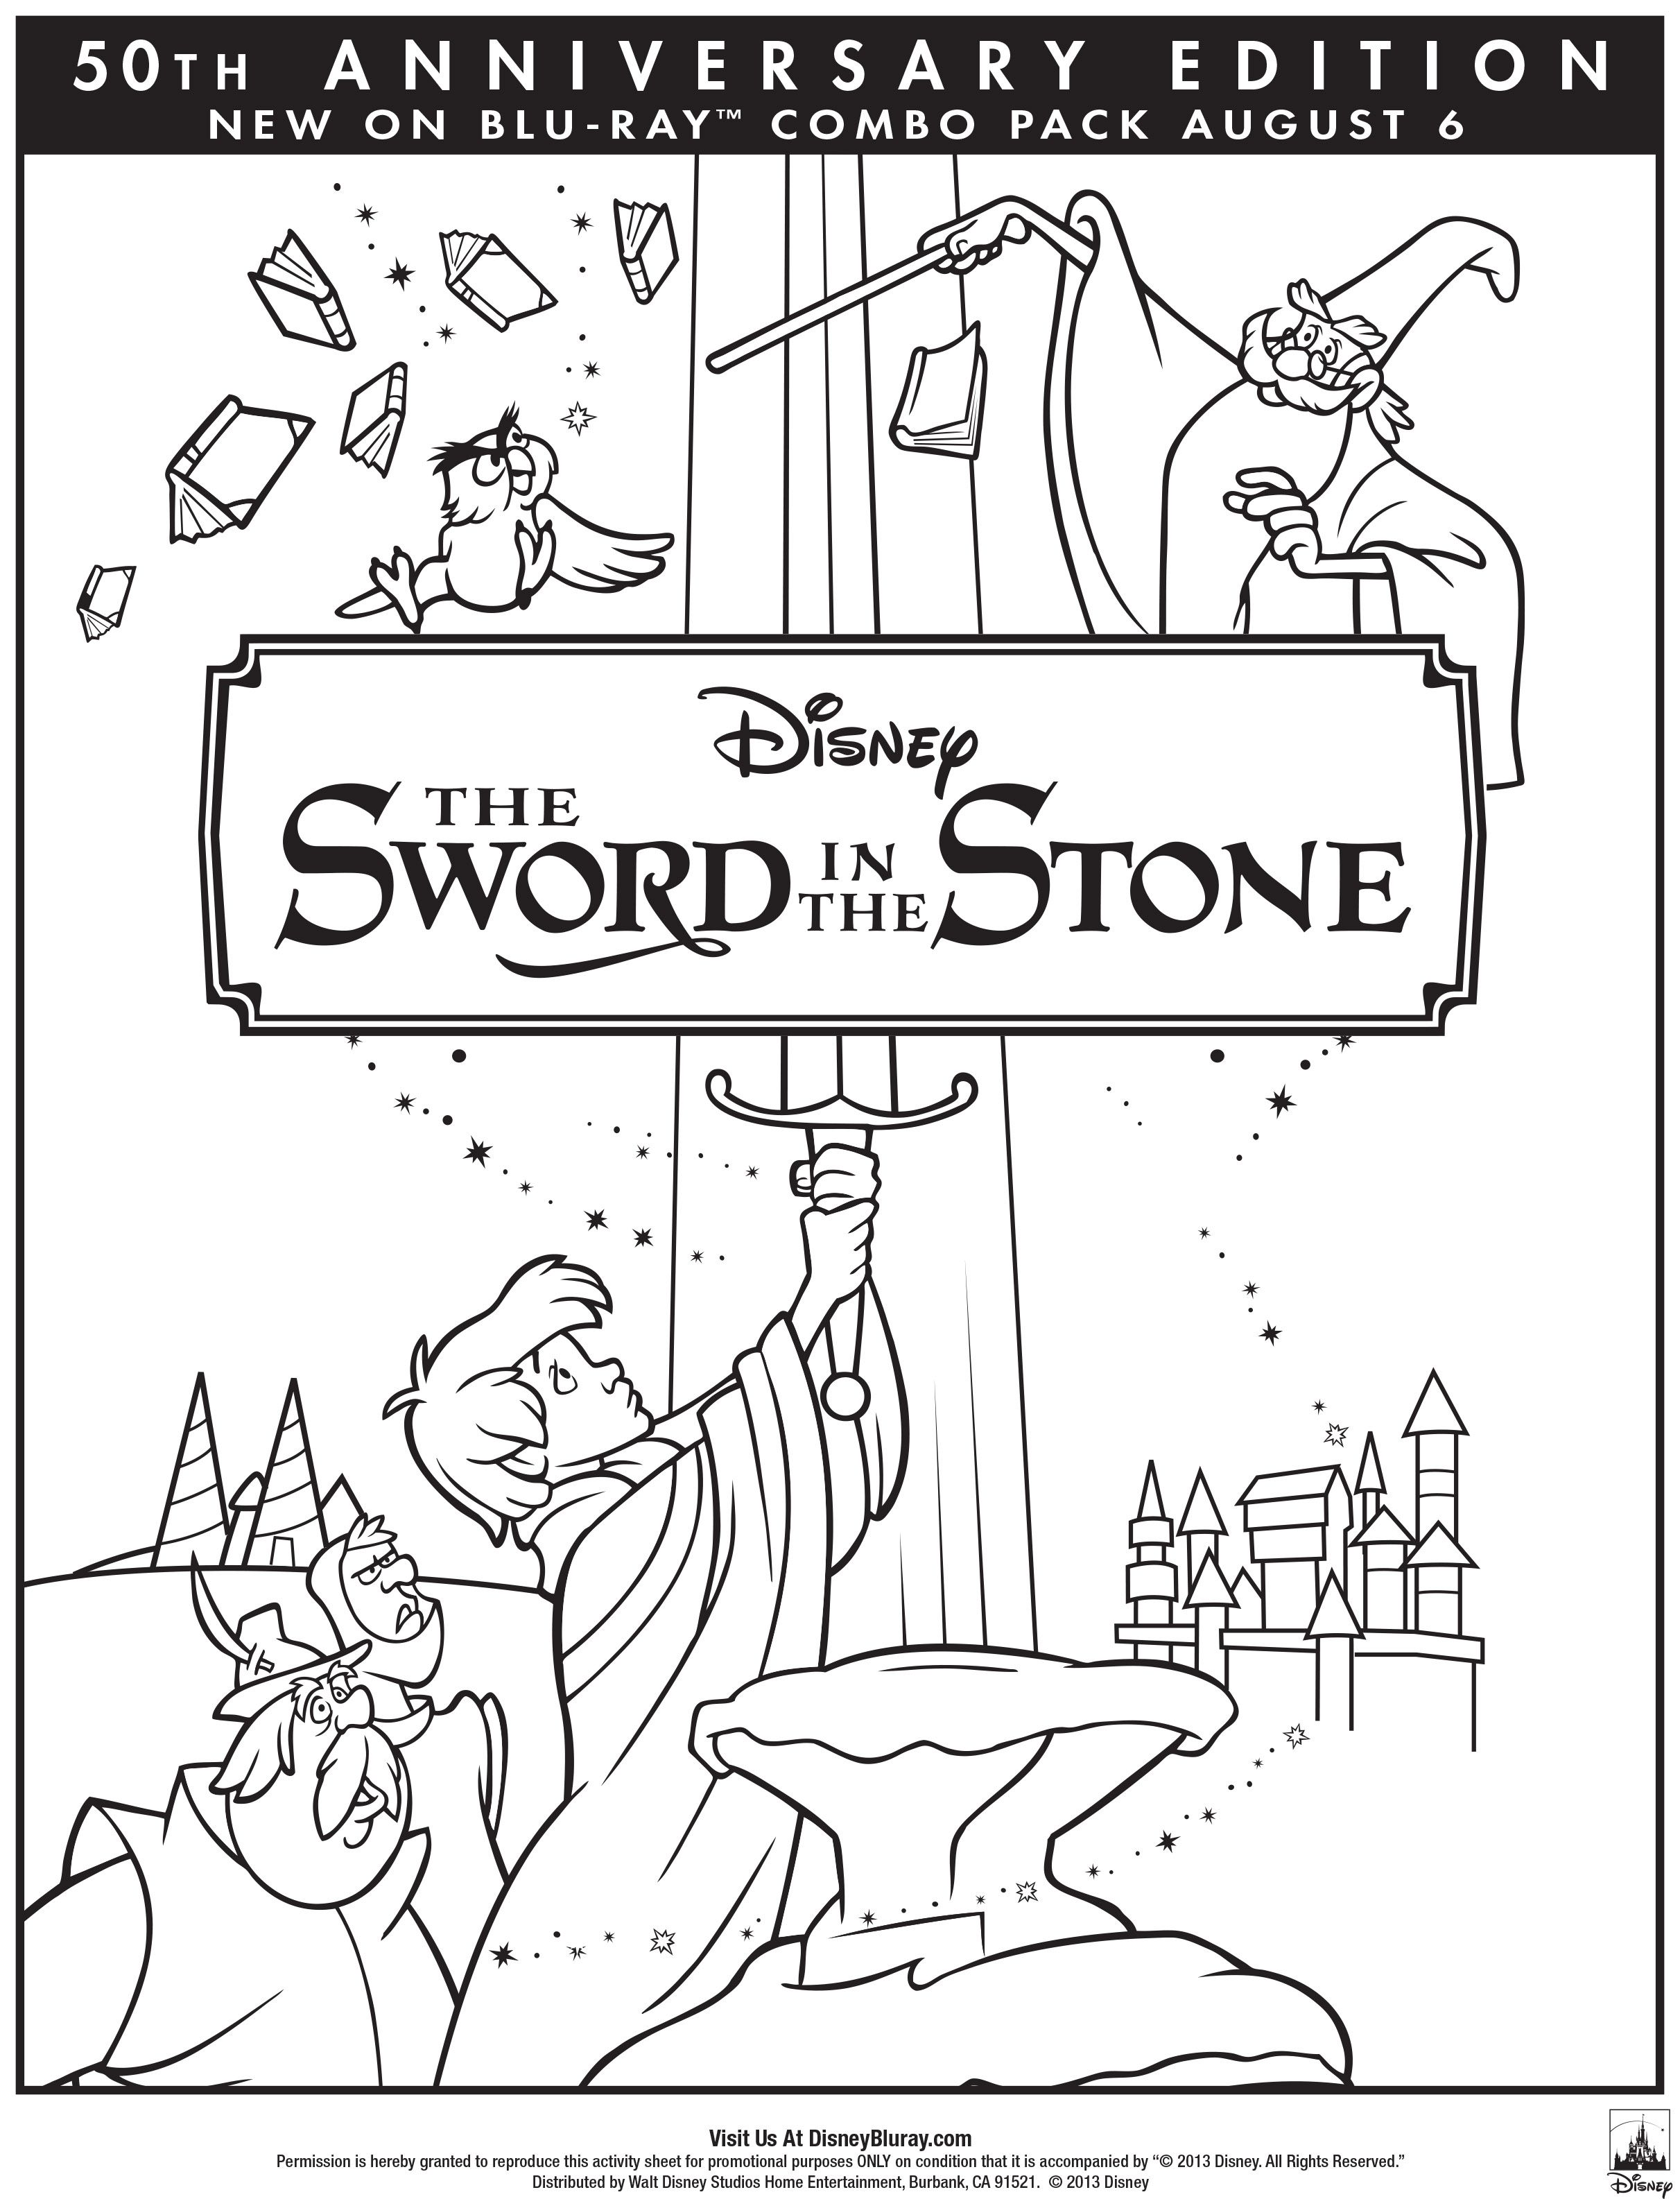 Get Your Family Ready For The Sword In The Stone 50th Anniversary